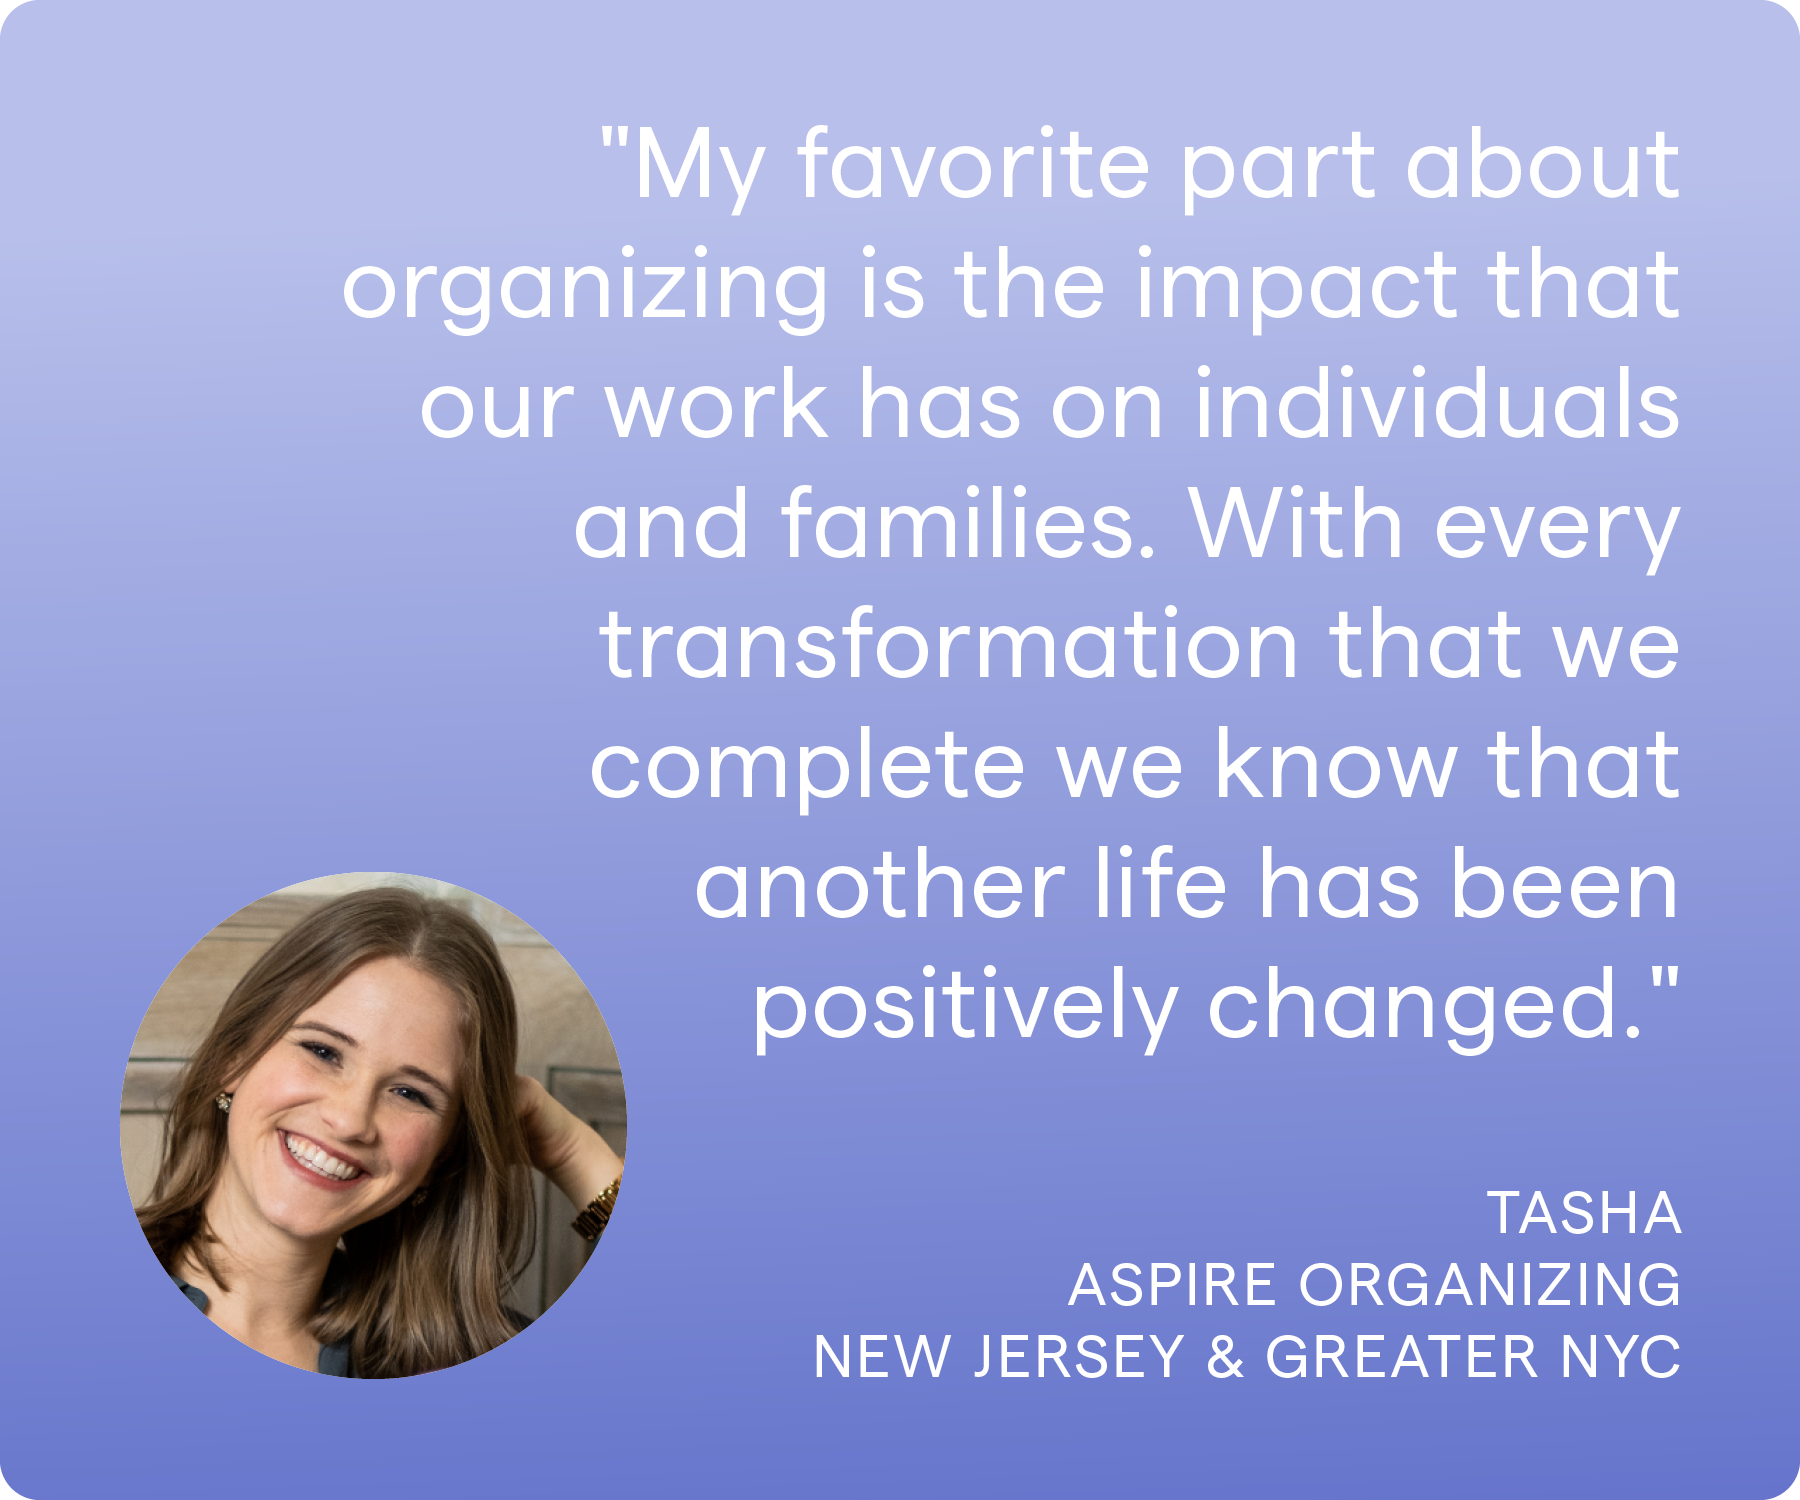 'My favorite part about organizing is the impact that our work has on individuals and families. With every transformation that we complete we know that another life has been positively changed.' Tasha, Aspire Organizing, New Jersey and Greater NYC